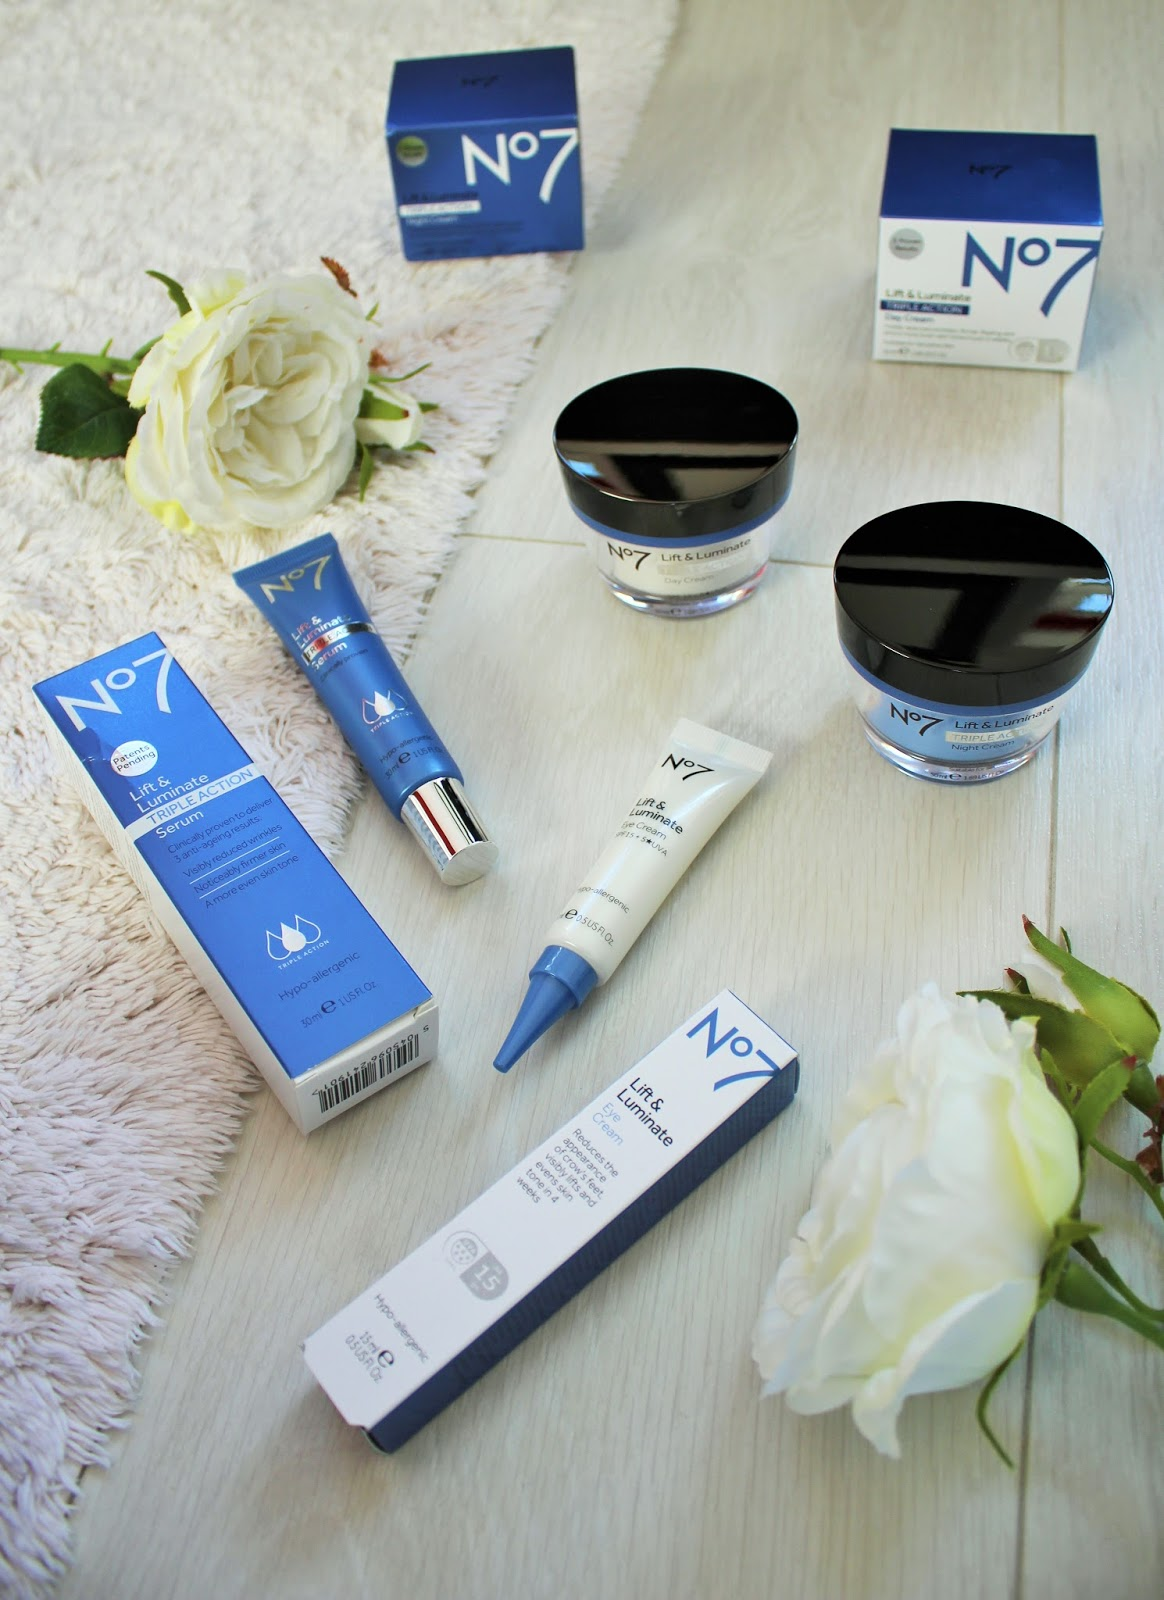 No7 Lift & Luminate Triple Action Range - First Impressions and Giveaway 2